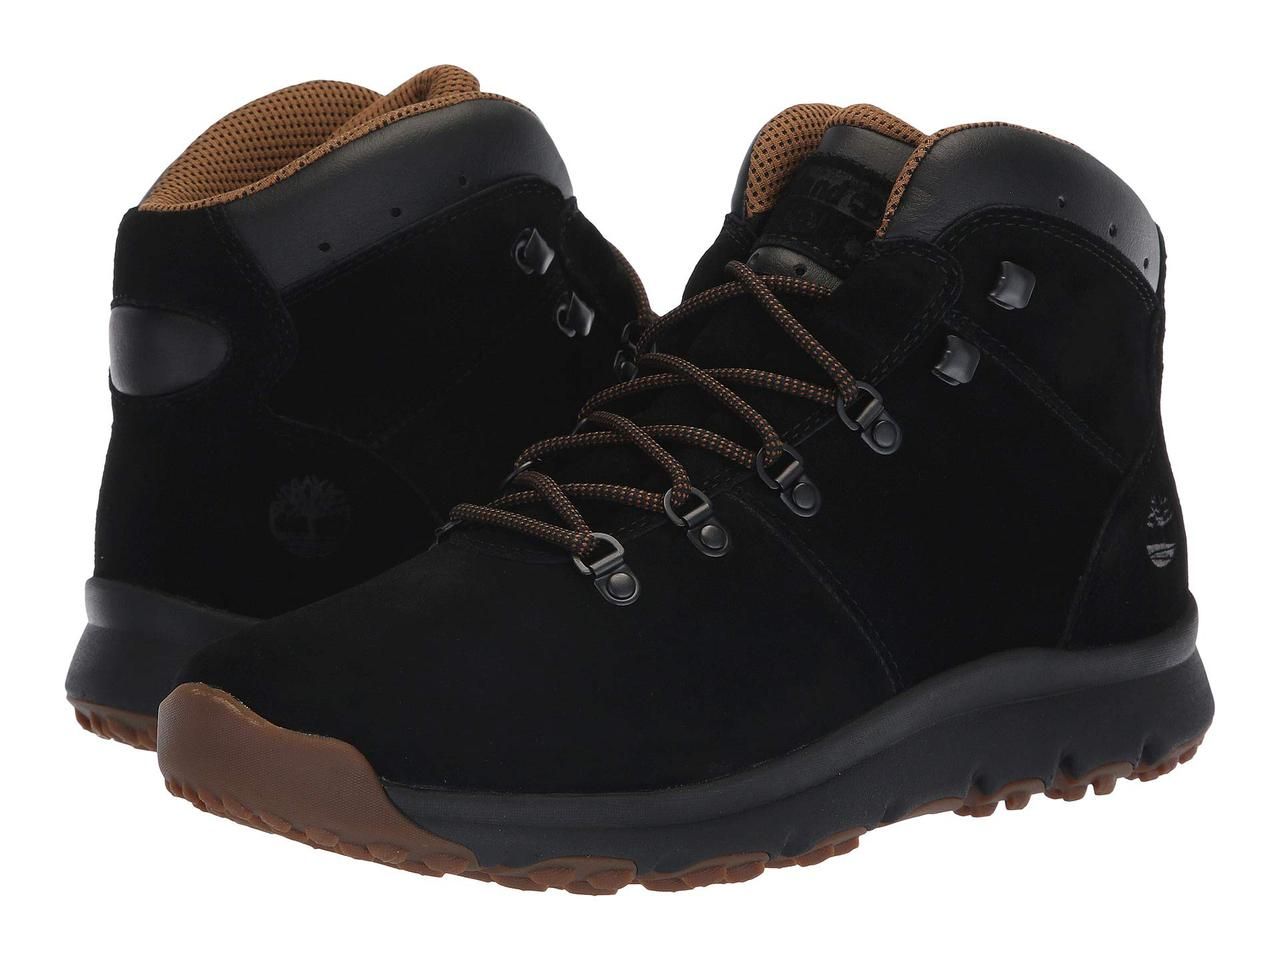 Ботинки Сапоги (Оригинал) Timberland World Hiker Mid Black Suede — в ... 44bb5a58edb